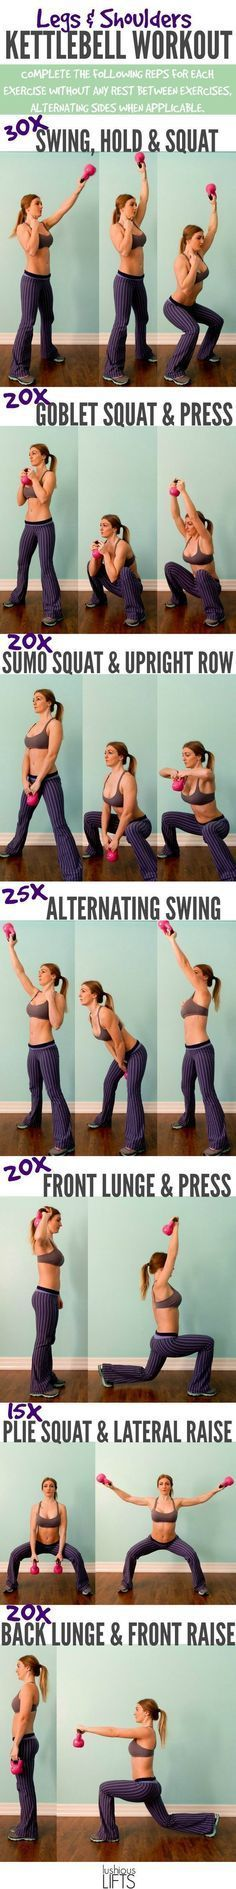 Legs and Shoulders Kettlebell Workout | Posted By: NewHowToLoseBellyFat.com #ShoulderWorkout